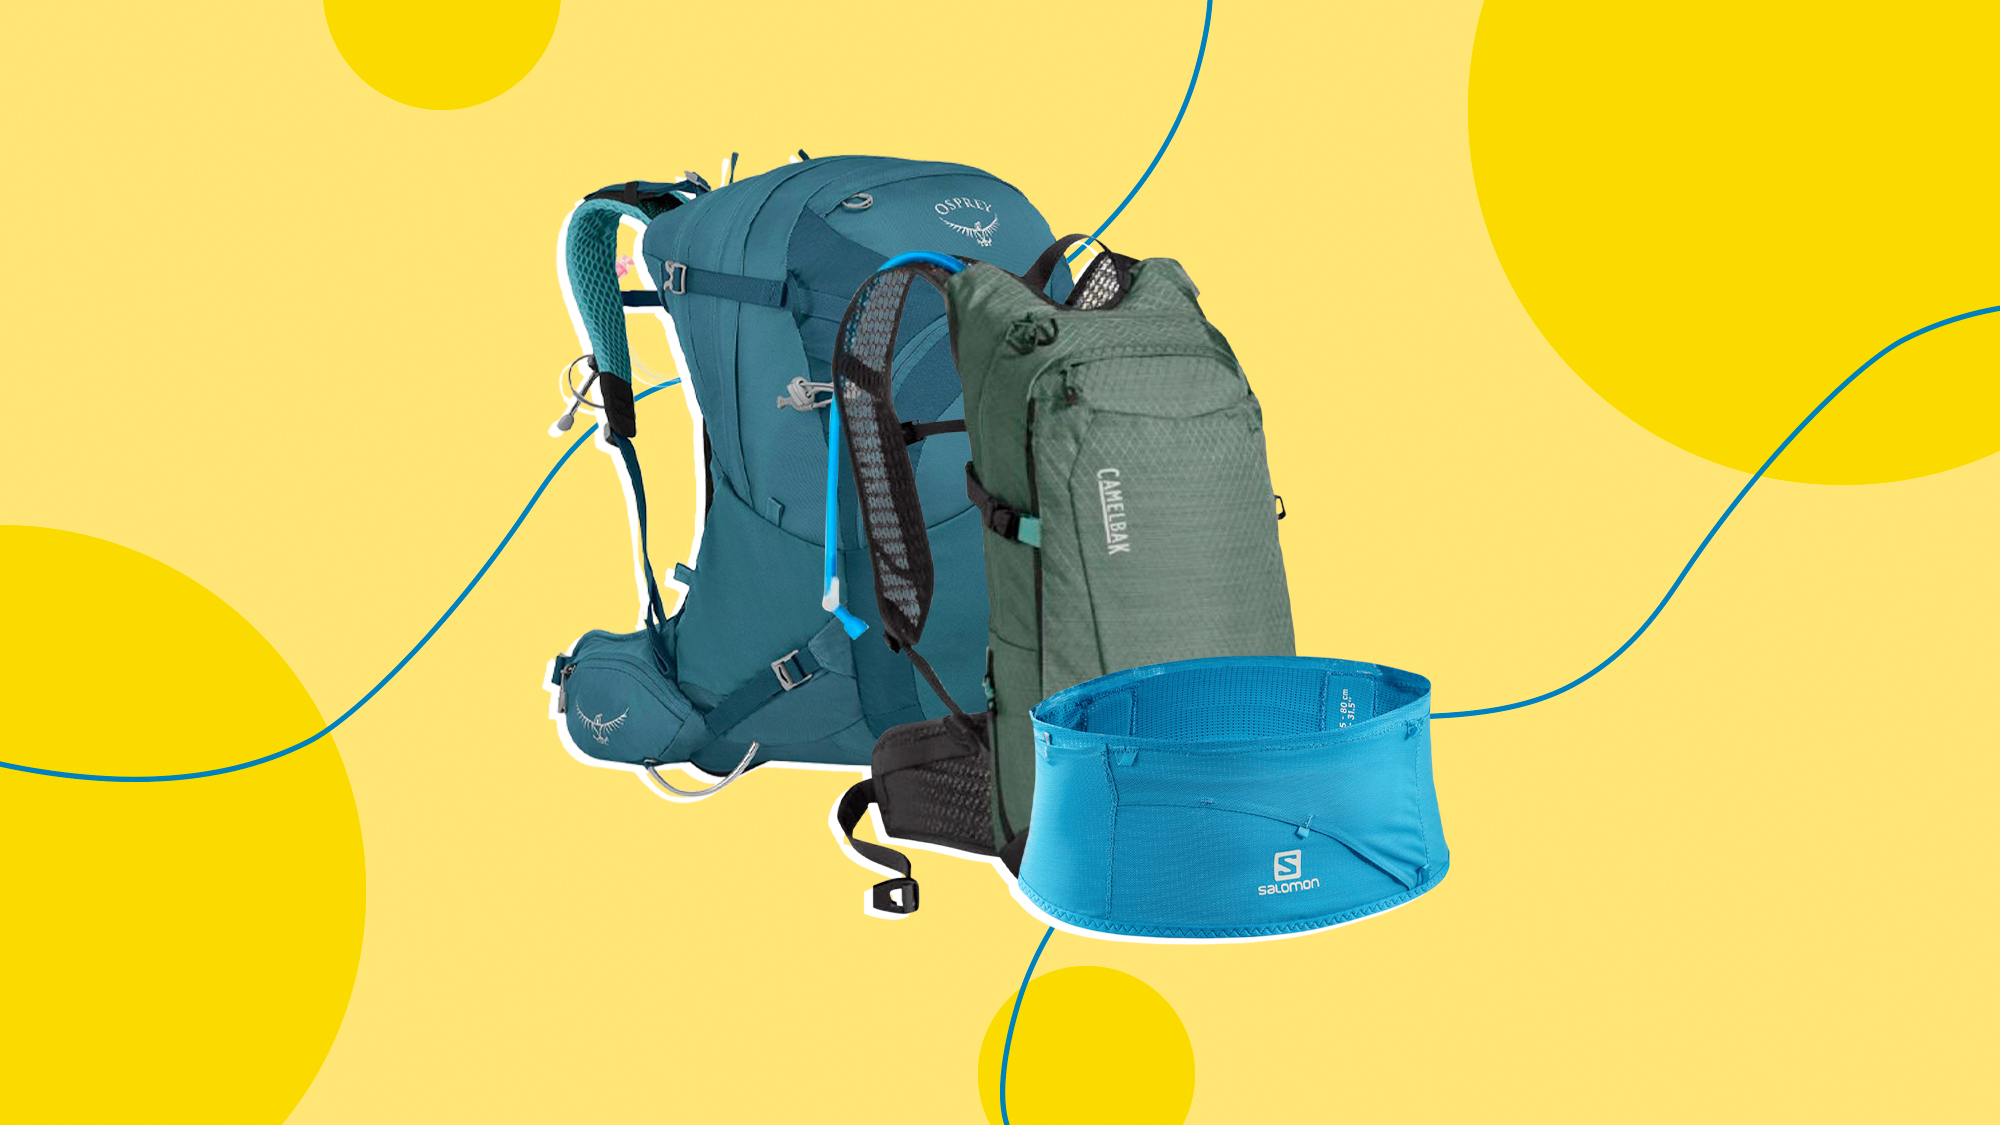 3 Hydration Packs for outdoor exercise on a designed background